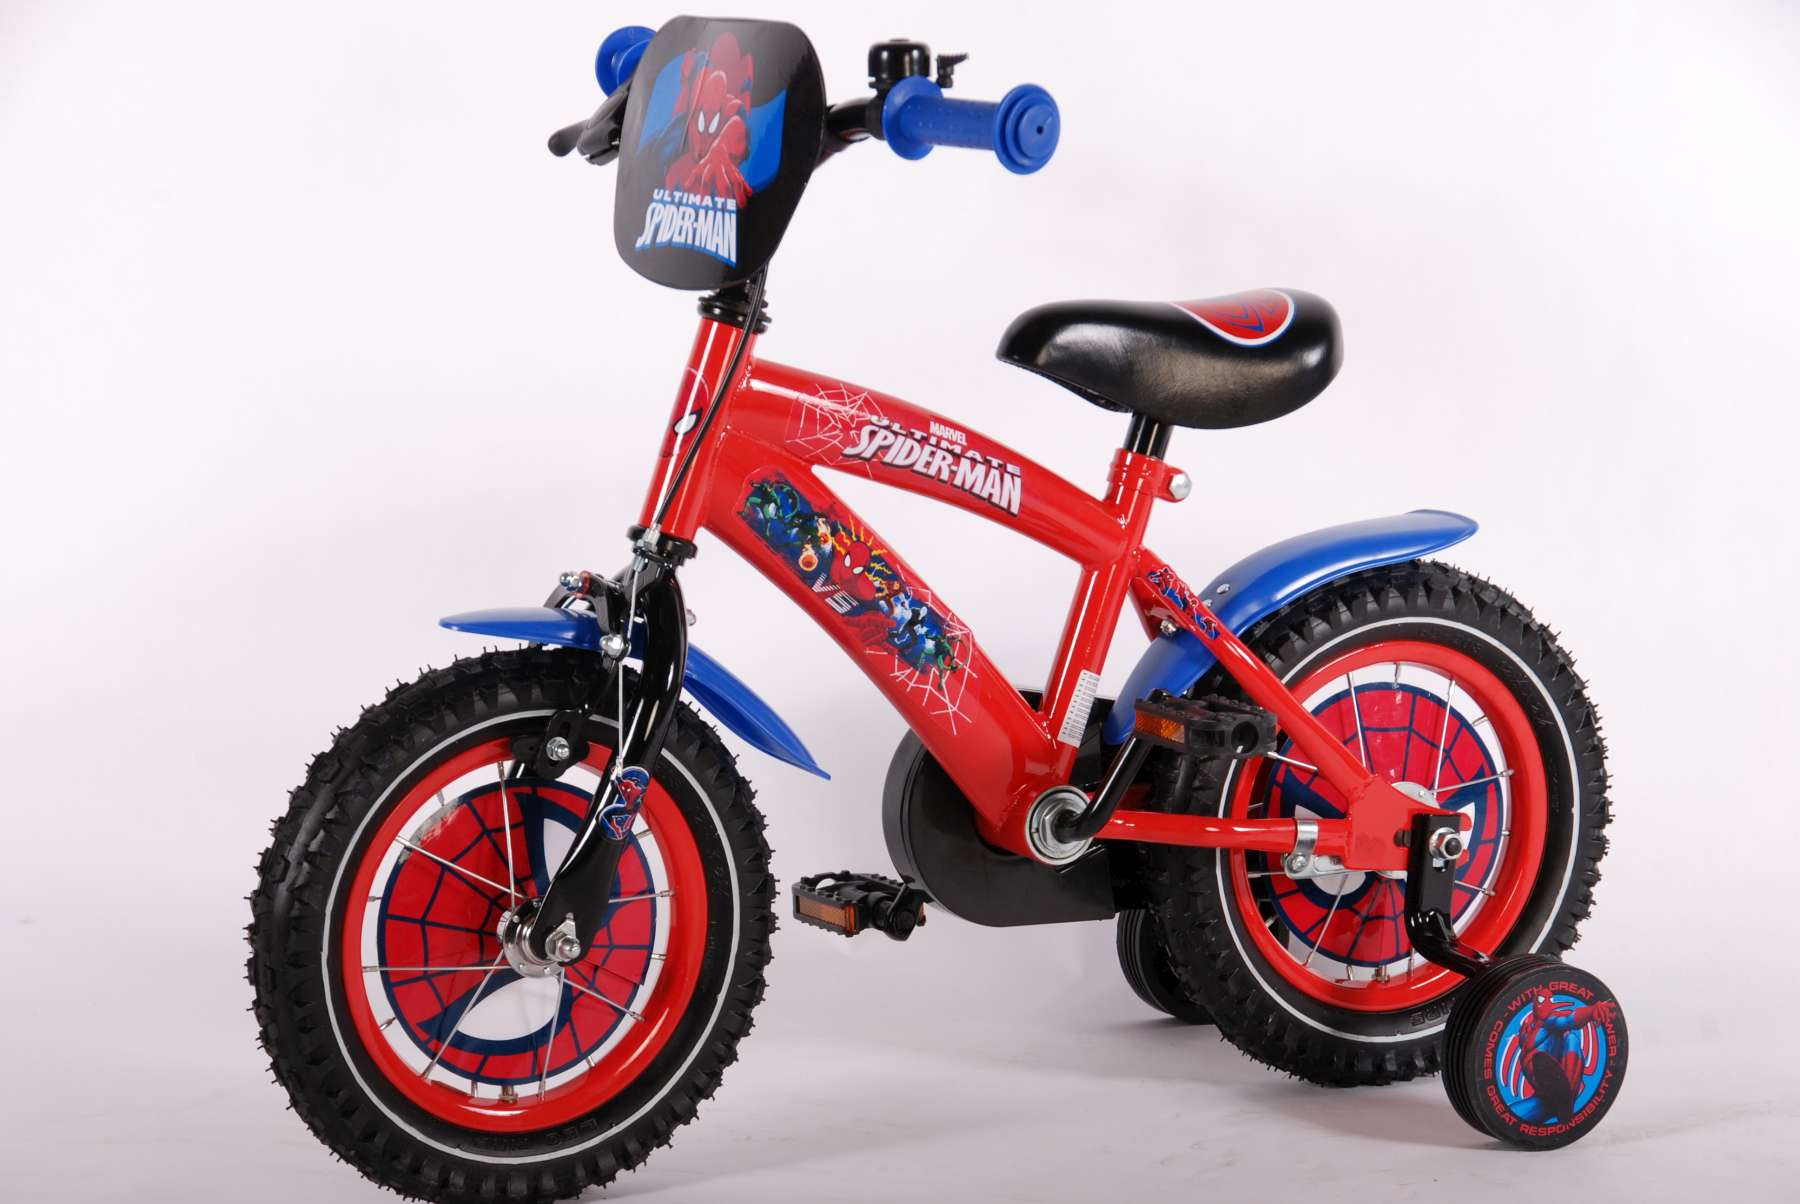 12 zoll kinderfahrrad volare ultimate spider man fahrr der. Black Bedroom Furniture Sets. Home Design Ideas